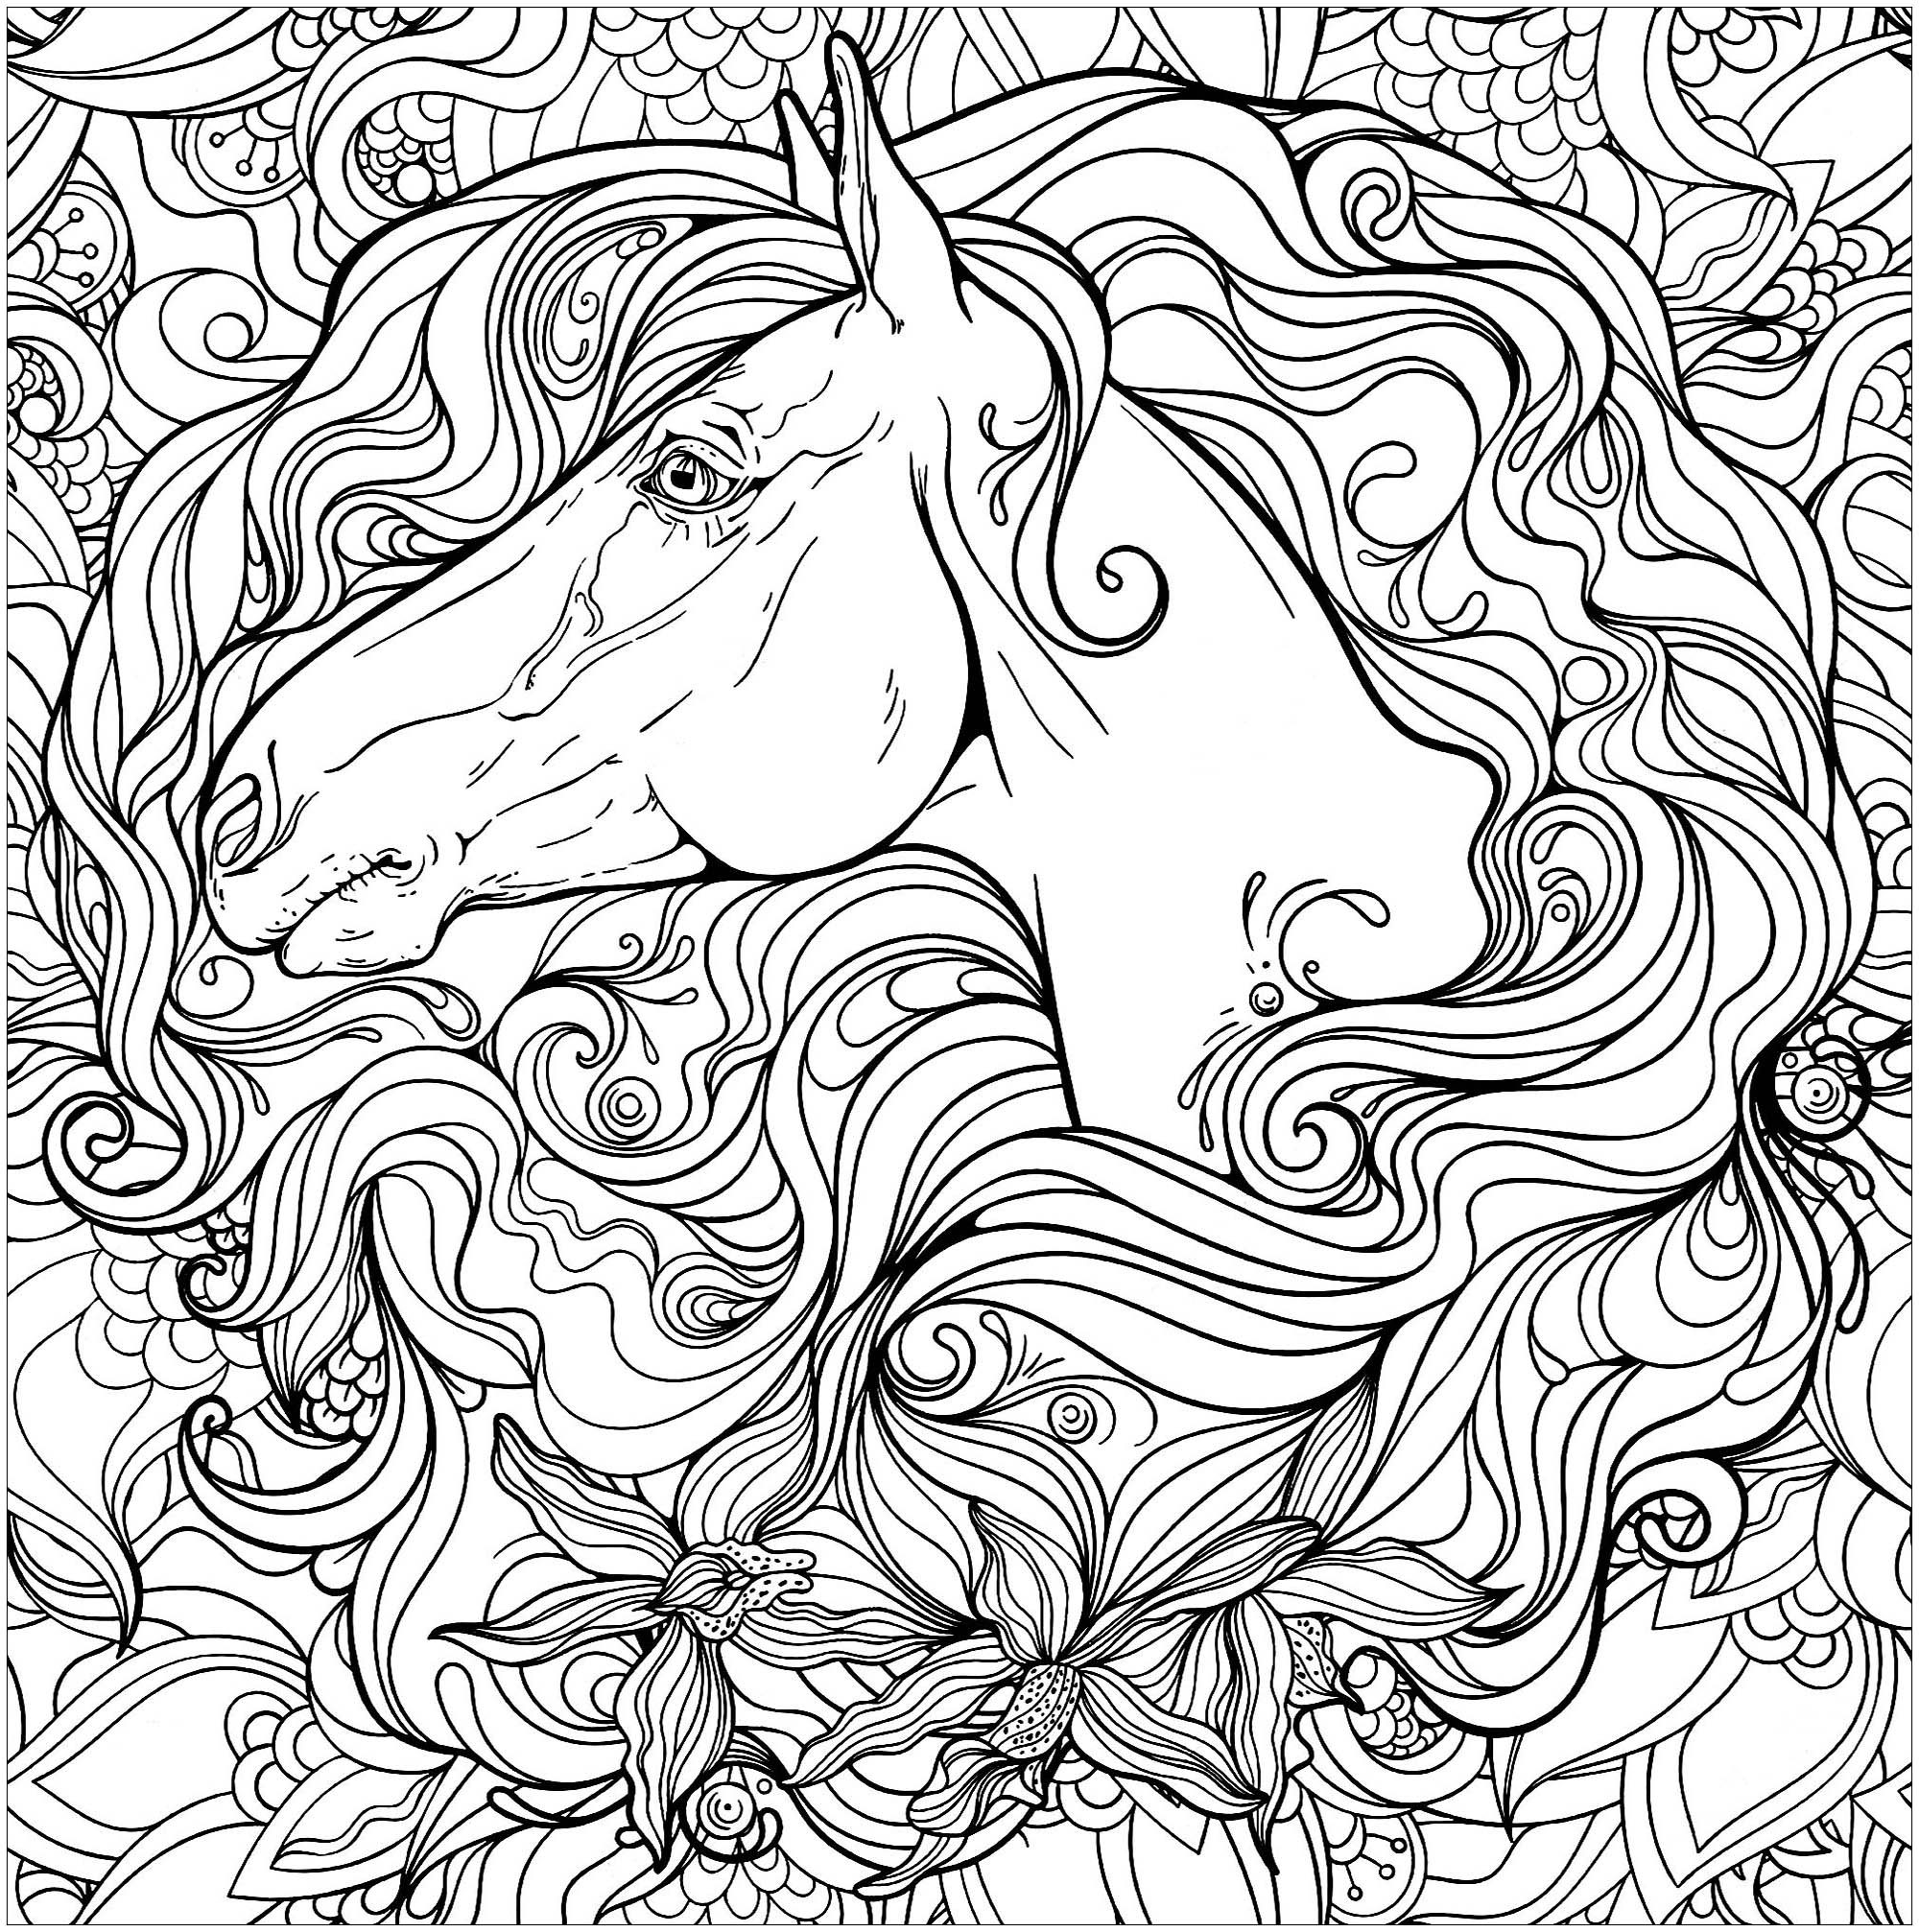 Carnival to download - Carnival Kids Coloring Pages